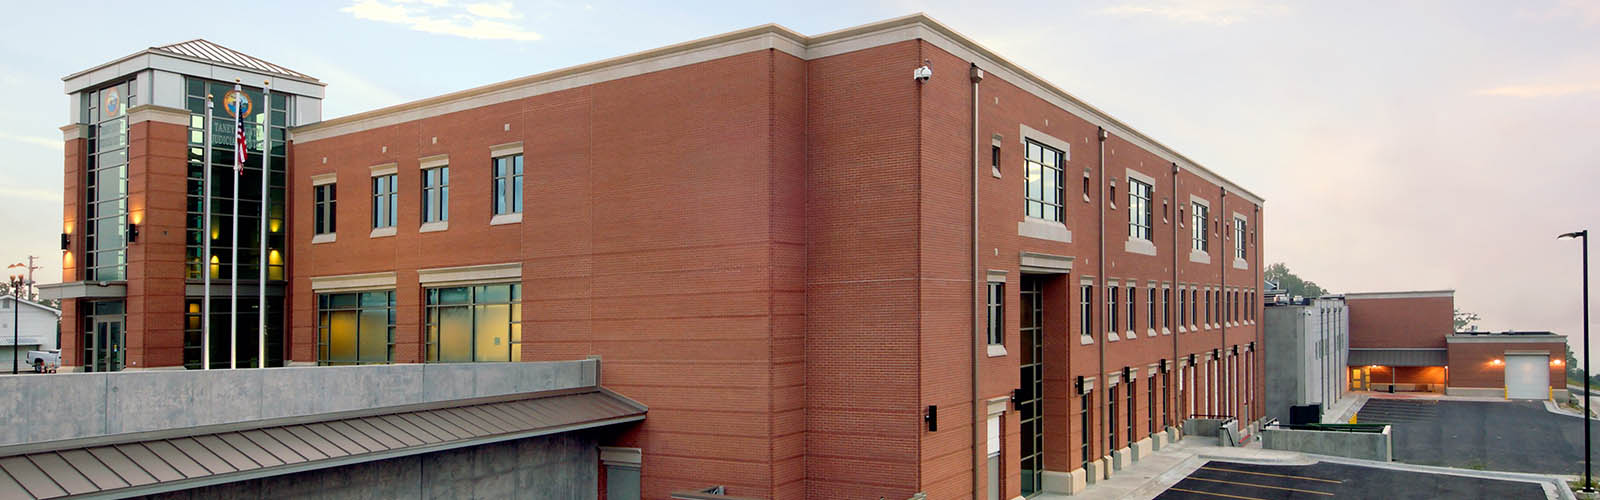 Taney County Justice Center 6